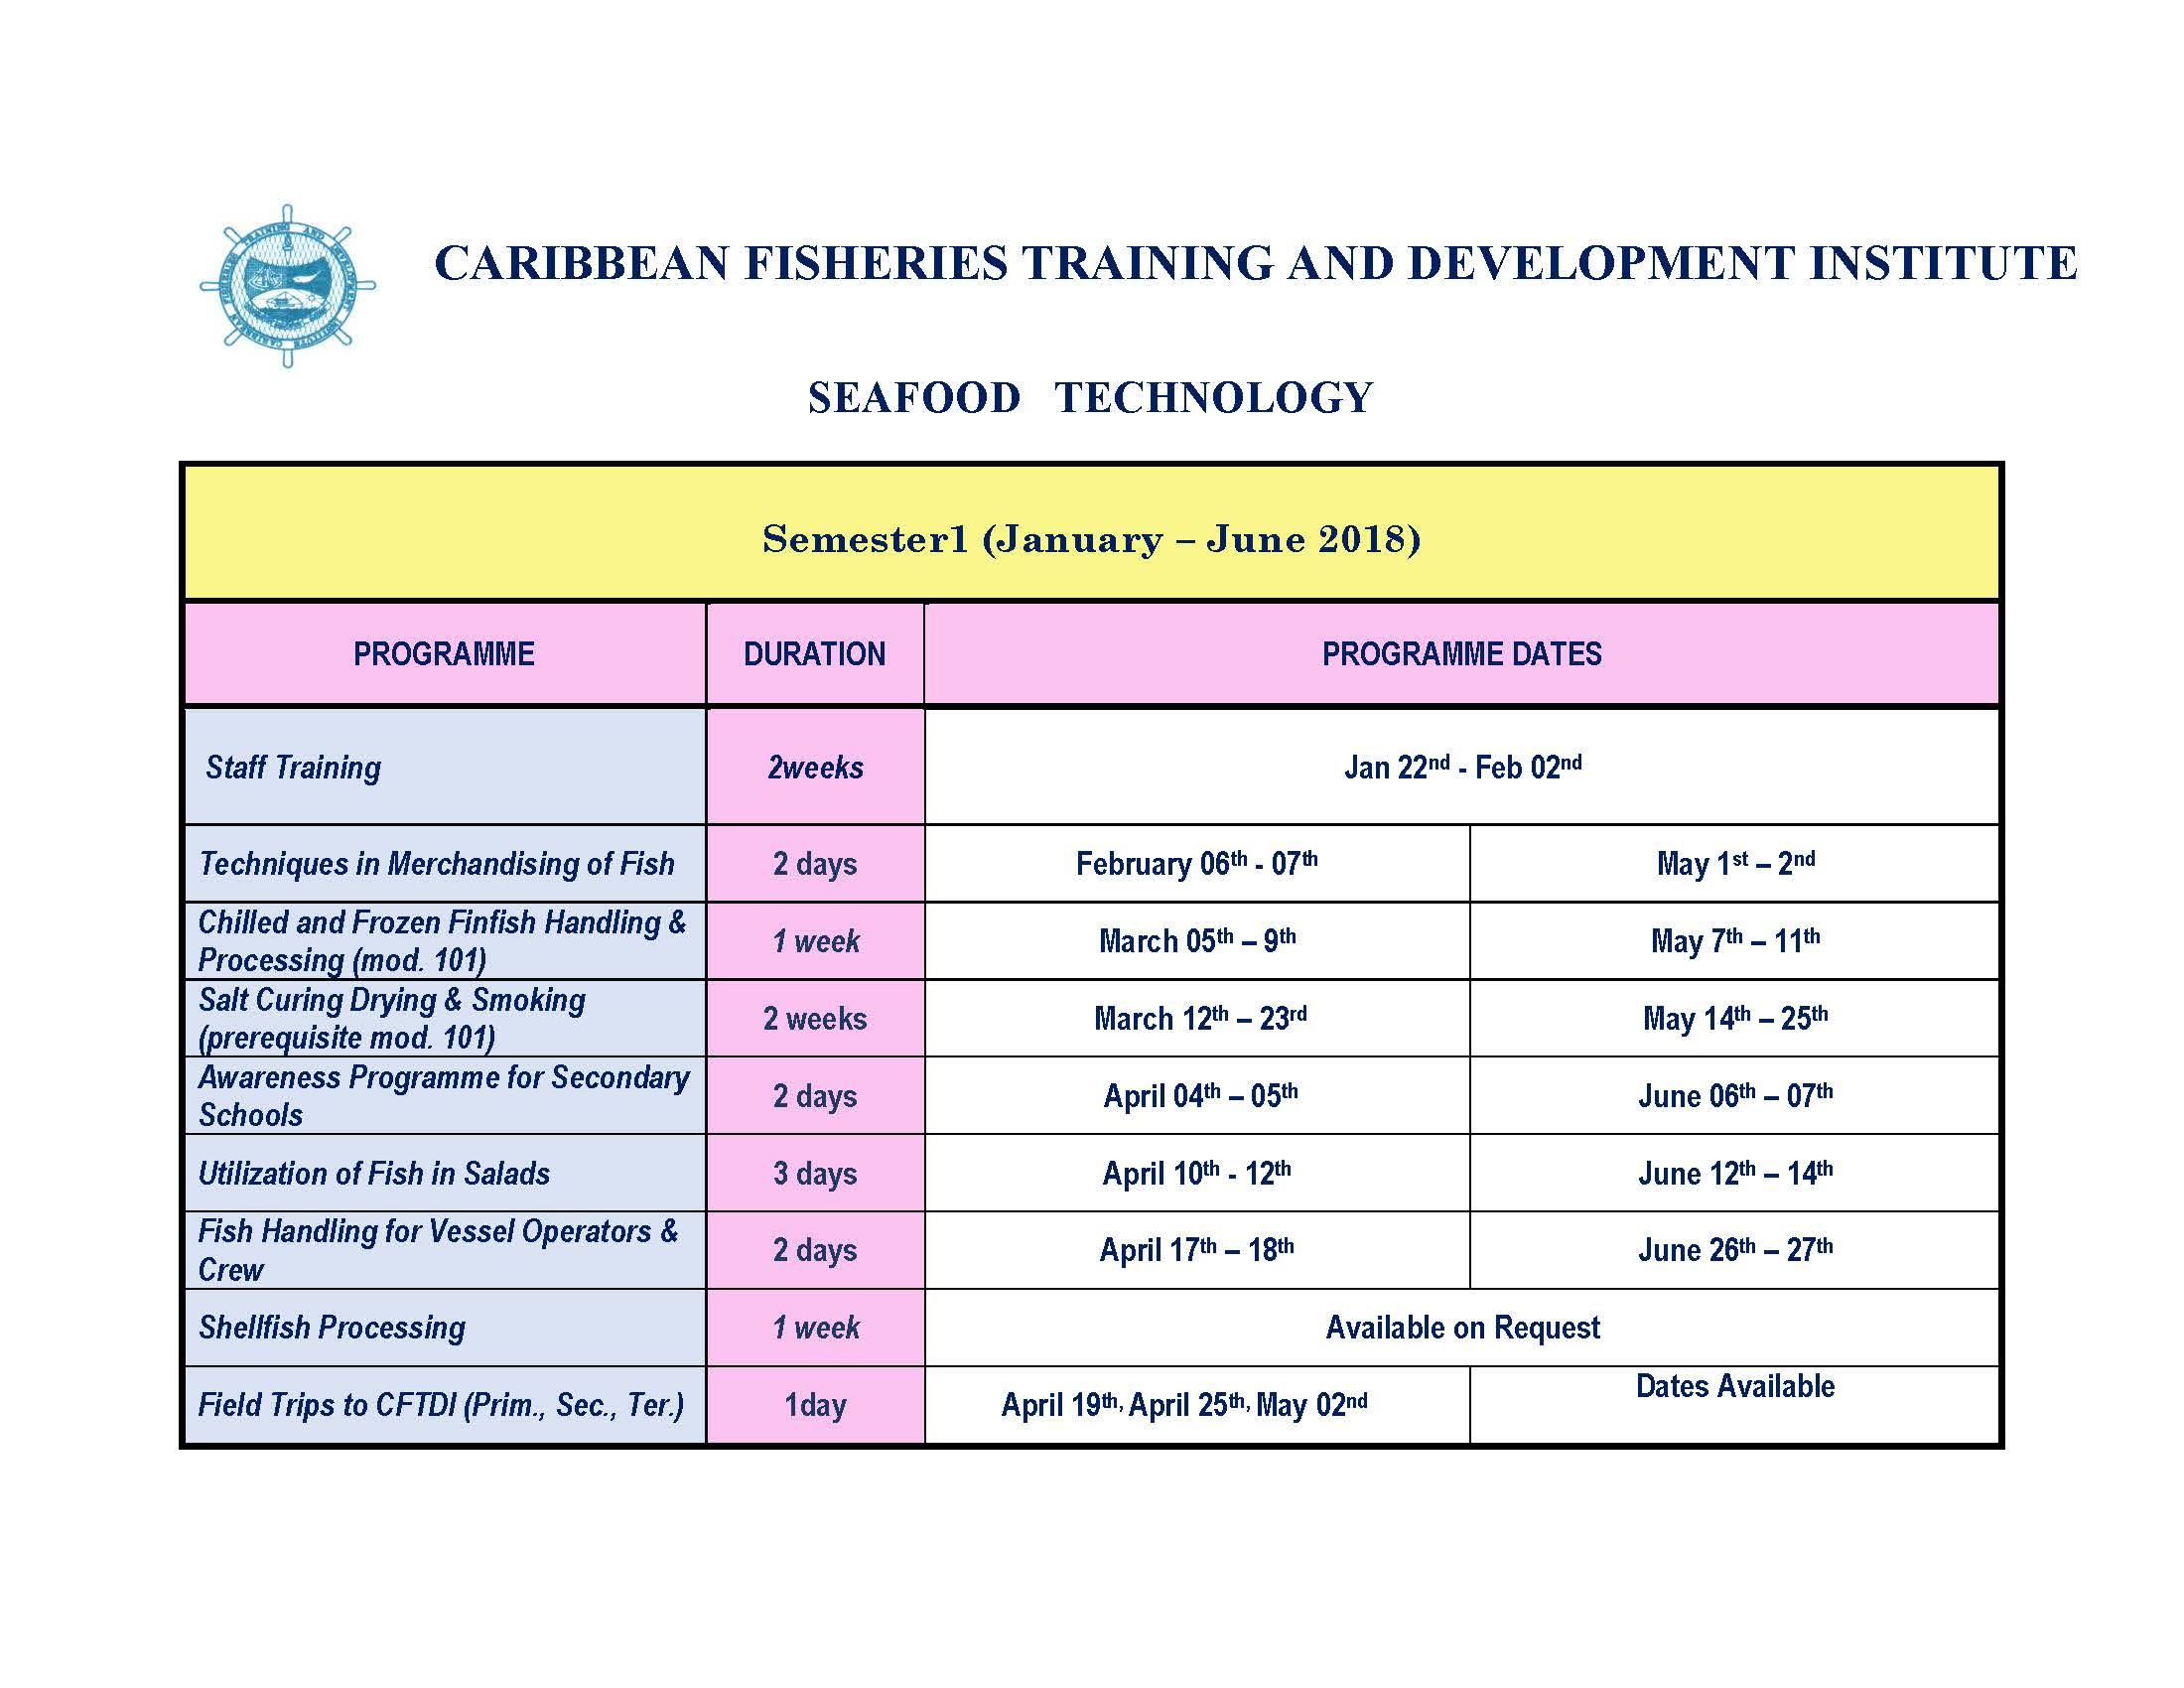 Seafood Processing semester 1 schedule 2018